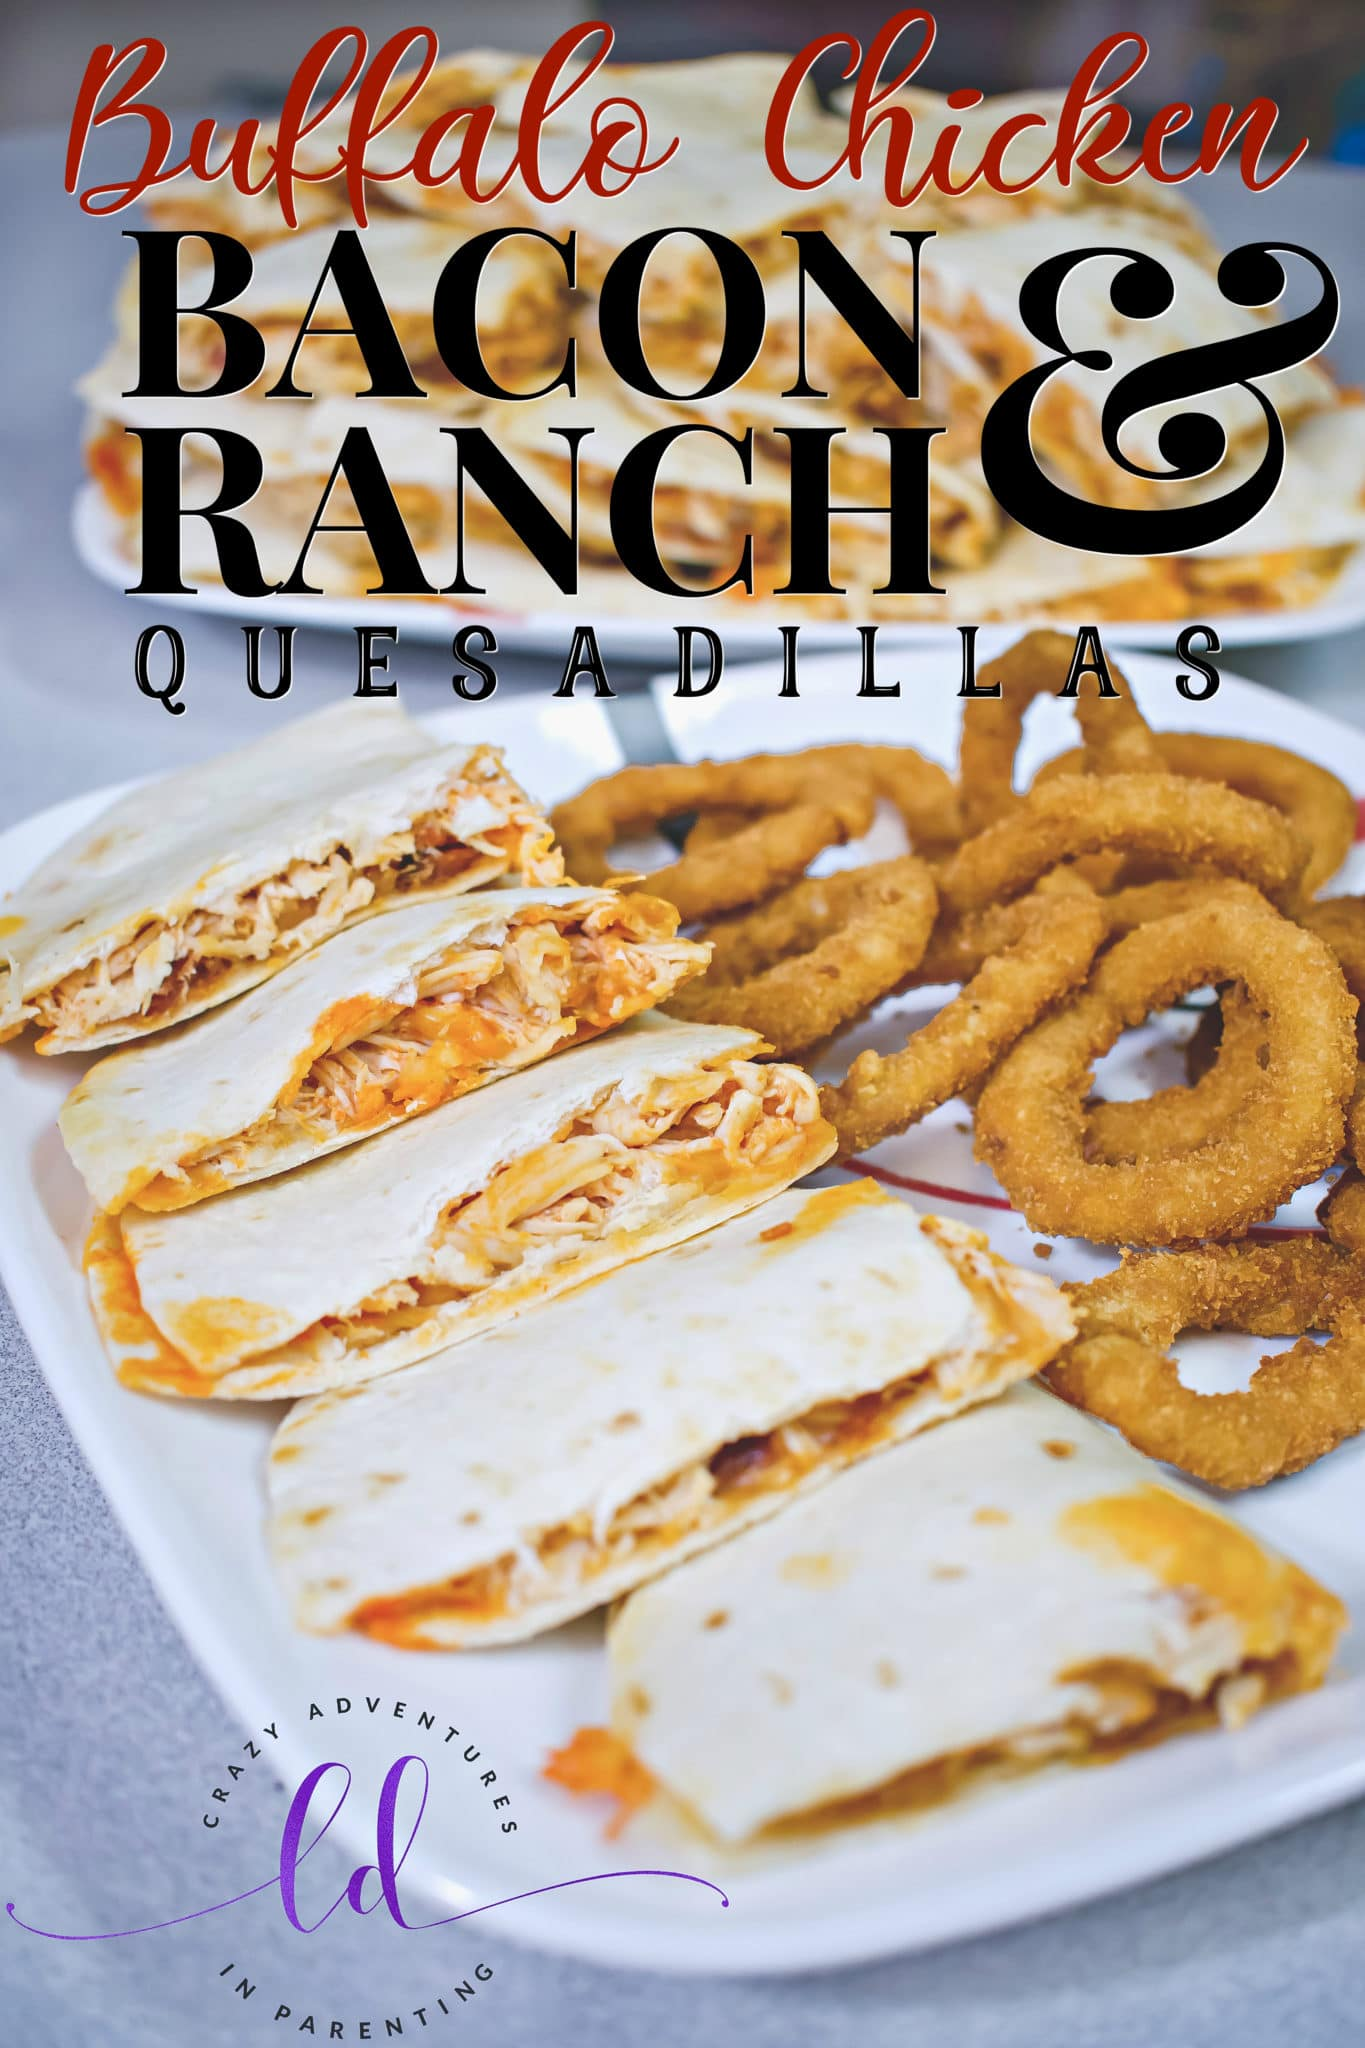 Buffalo Chicken Bacon Ranch Quesadillas